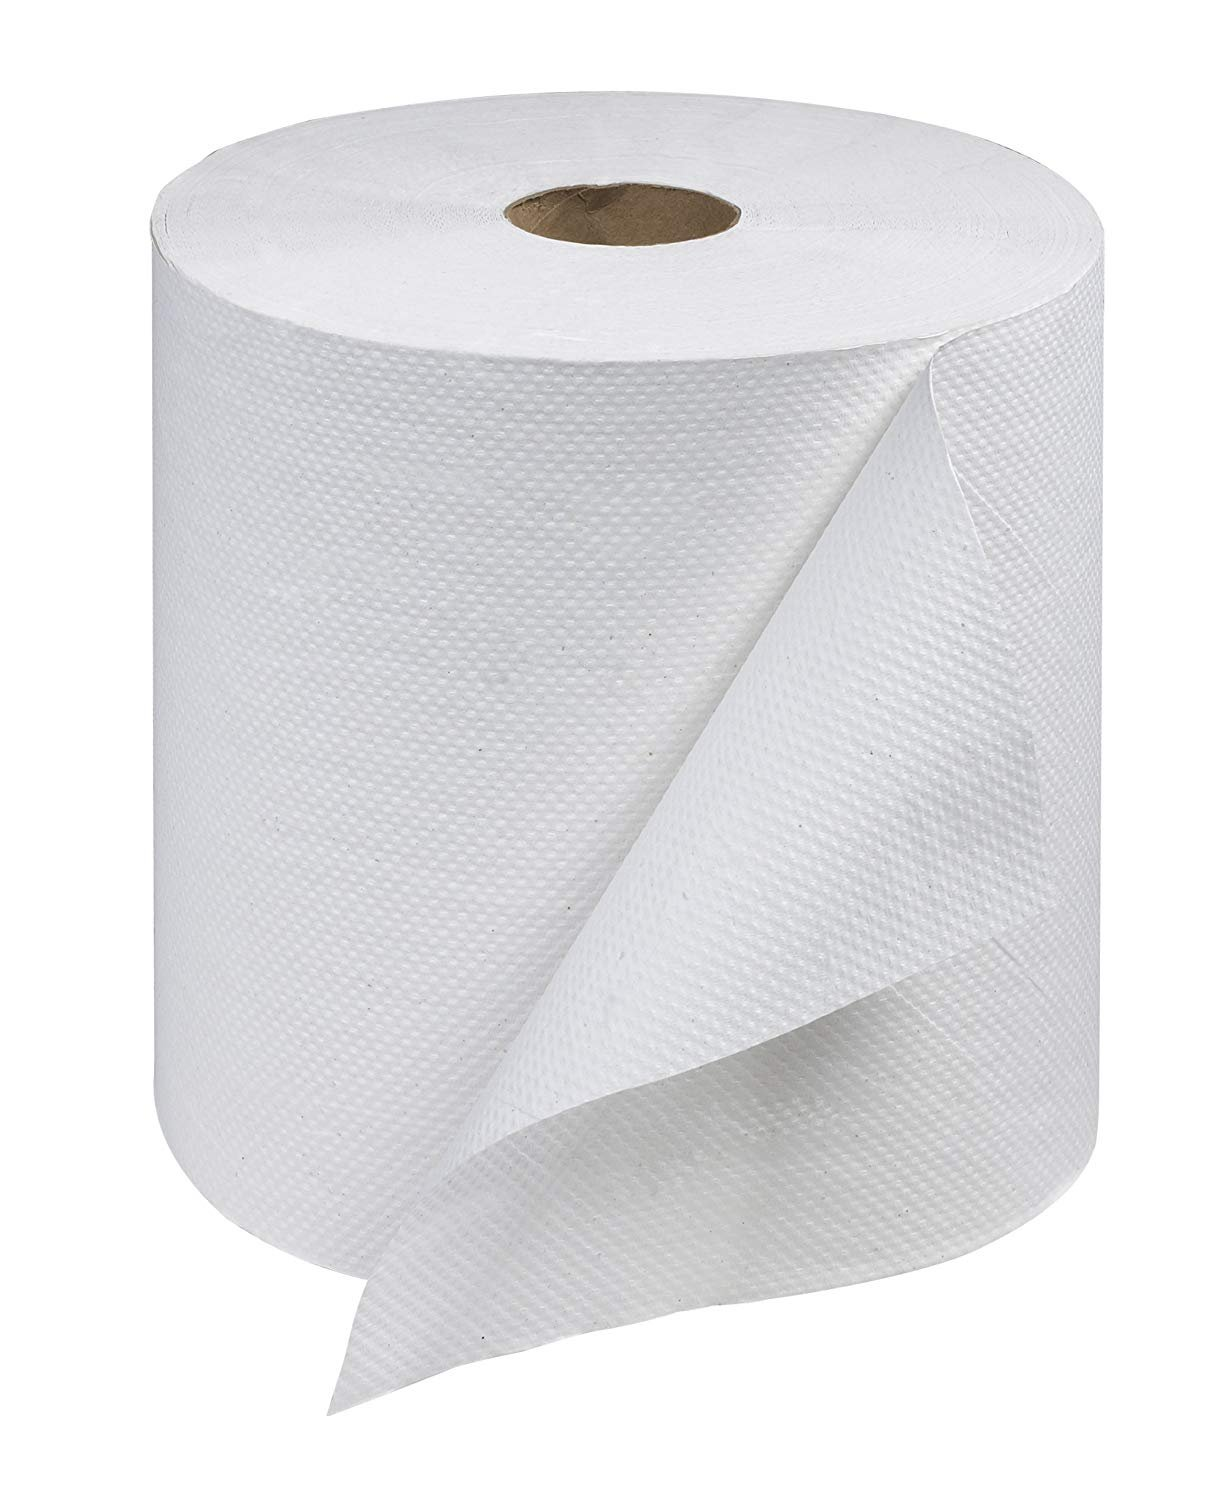 Tork Universal RB8002 Hardwound Paper Roll Towel, 1-Ply, 7.87'' Width x 800' Length, White (Case of 6 Rolls, 800 per Roll, 4,800 Feet) (Тwo Рack) by Tork (Image #6)